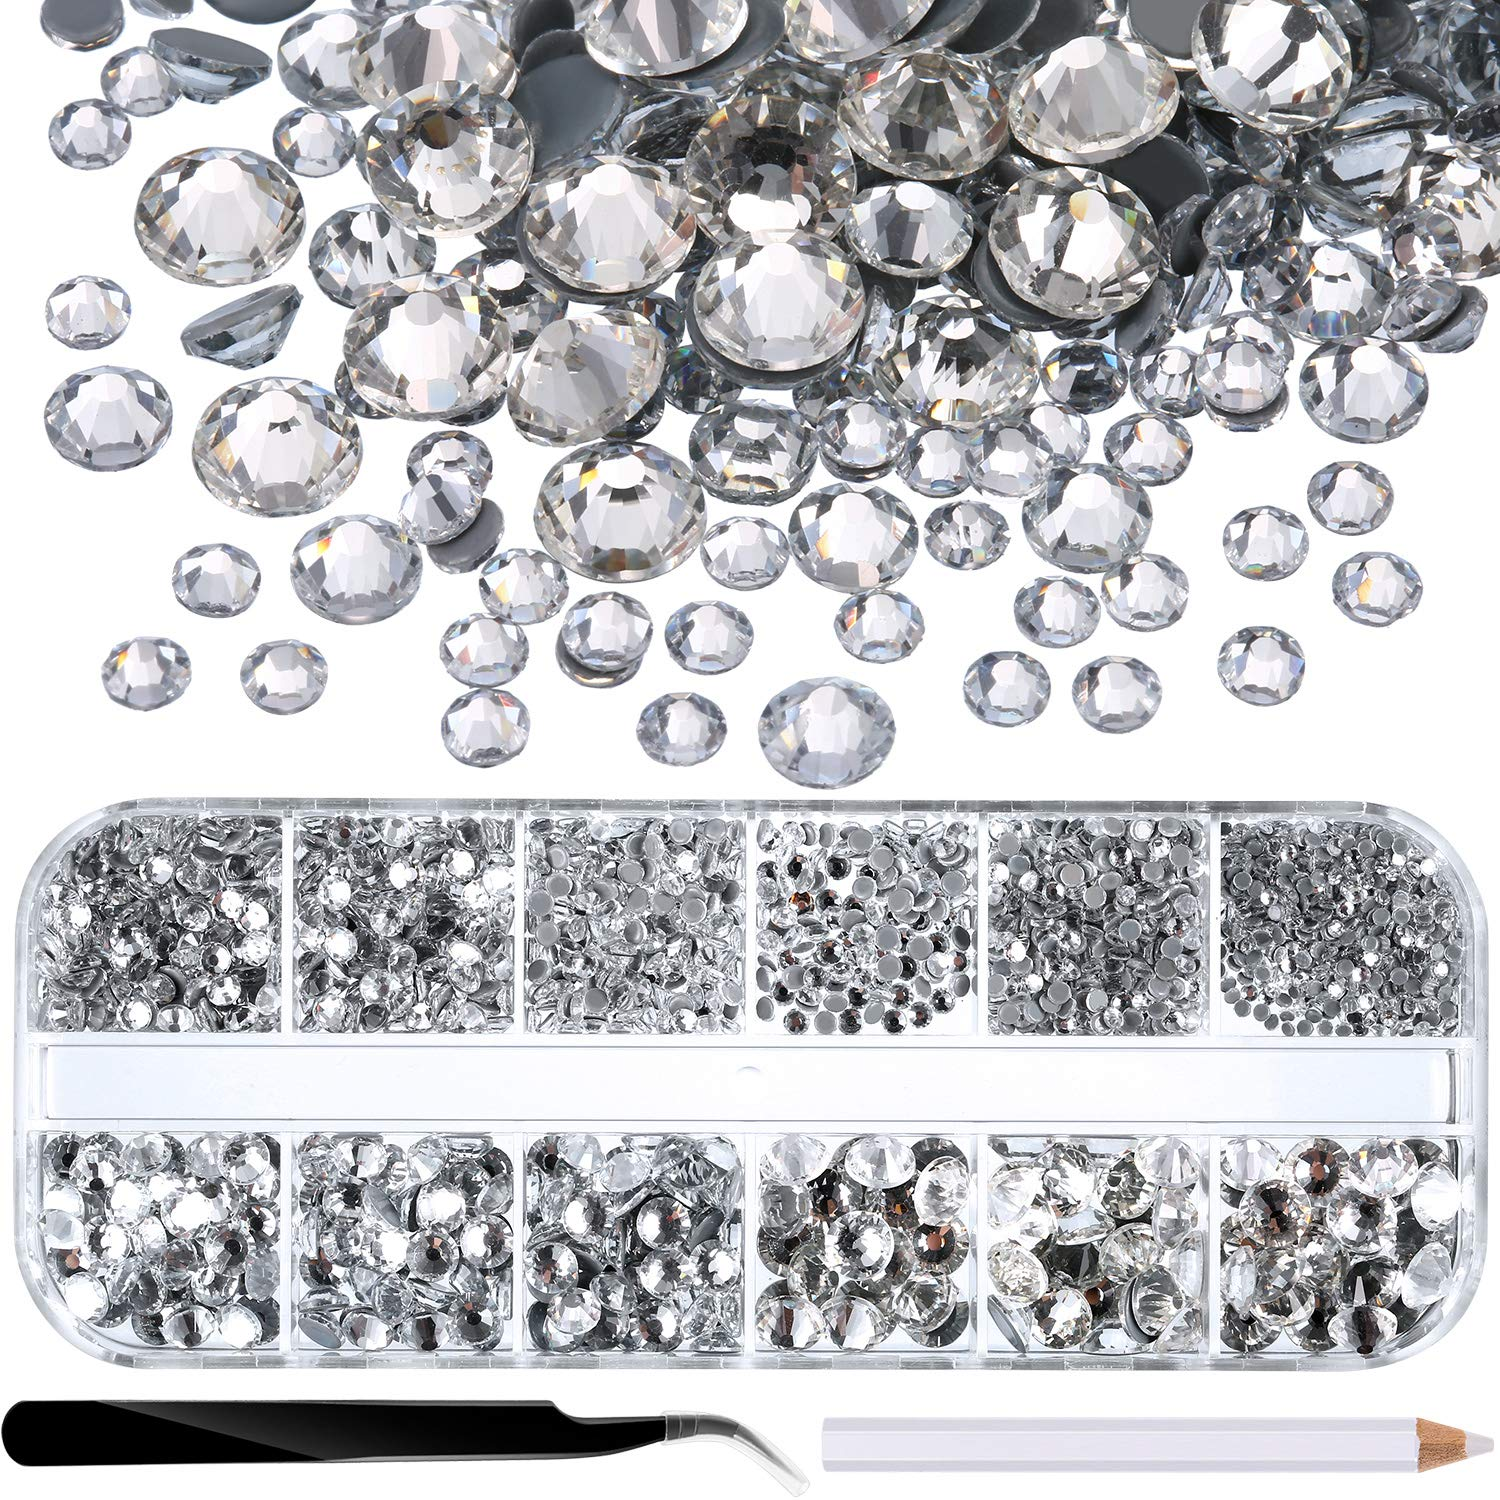 SS4-SS30 Paradise Shine 2000 Pieces Hot Fix Glass Flatback Rhinestones HotFix Round Crystal Gems 1.5-6 MM in Storage Box with Tweezers and Picking Rhinestones Pen